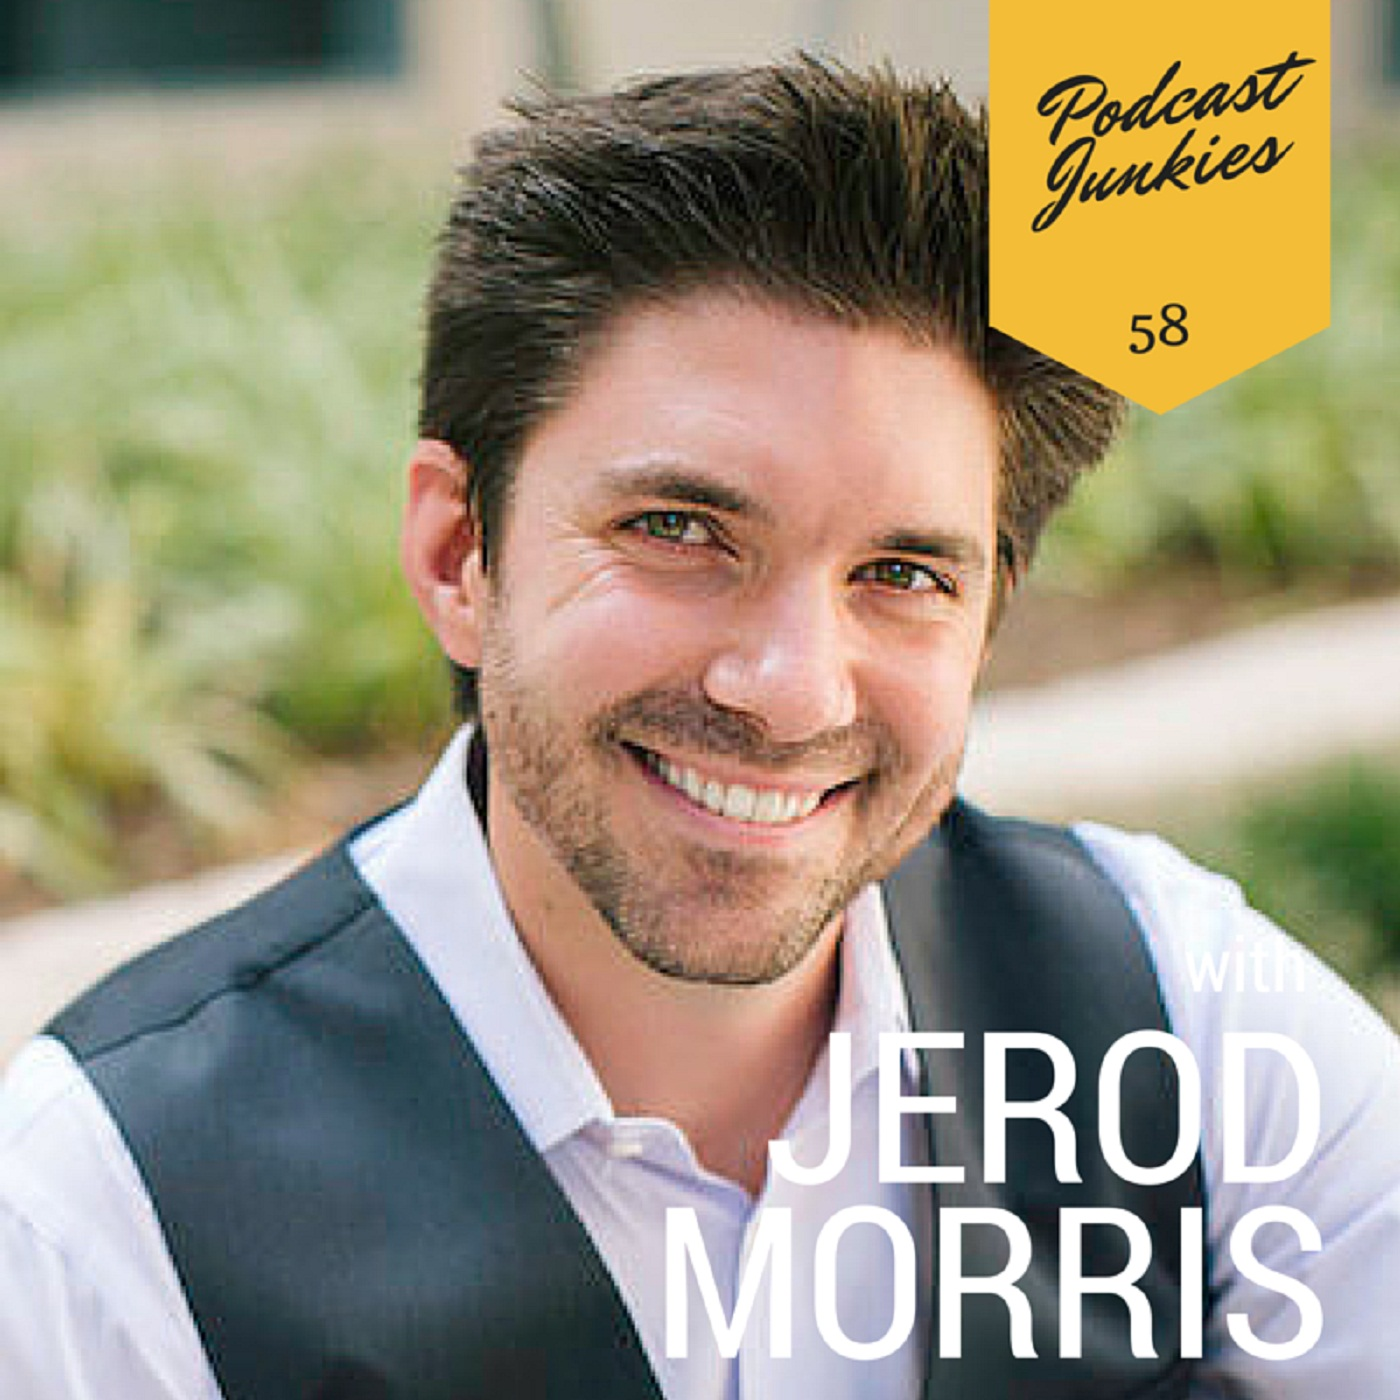 058 Jerod Morris | Don't Know Where To Start? Build An Audience